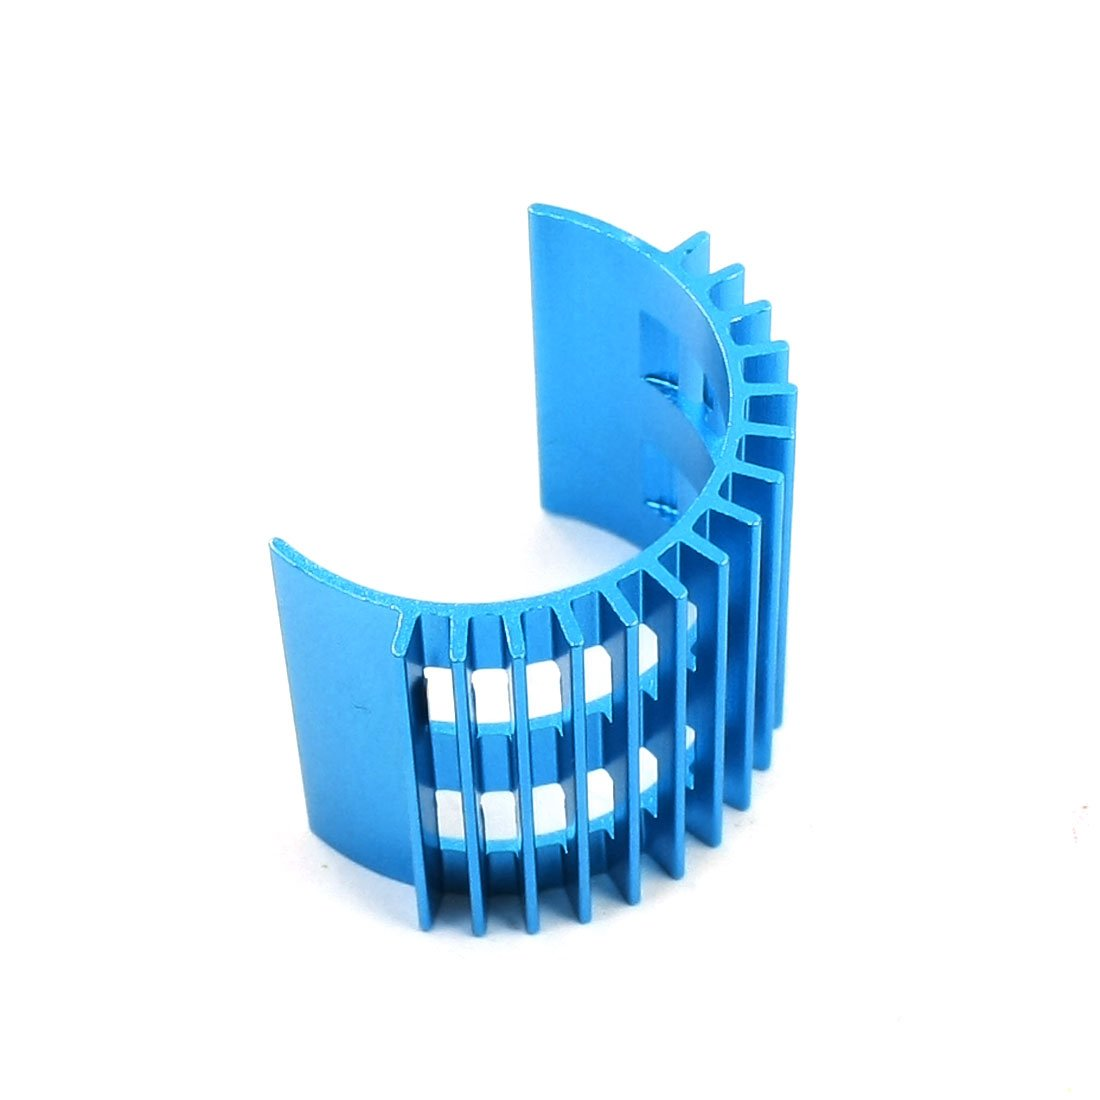 Heatsink Heat Diffuse 15 Fins Cooling Fin for 380 Motor